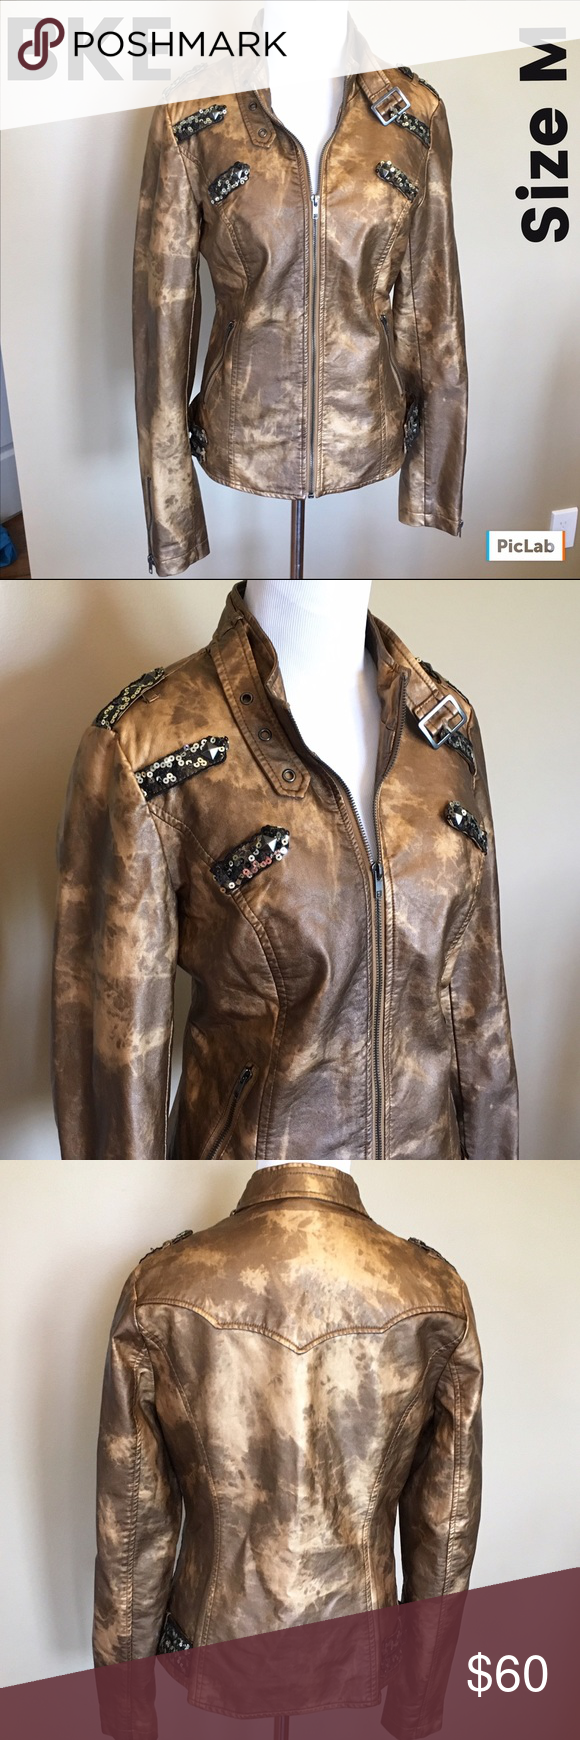 BKE Faux Leather Jacket Size M Perfect for fall - distressed leather look with sequins and Bling! Excellent Condition! BKE Jackets & Coats